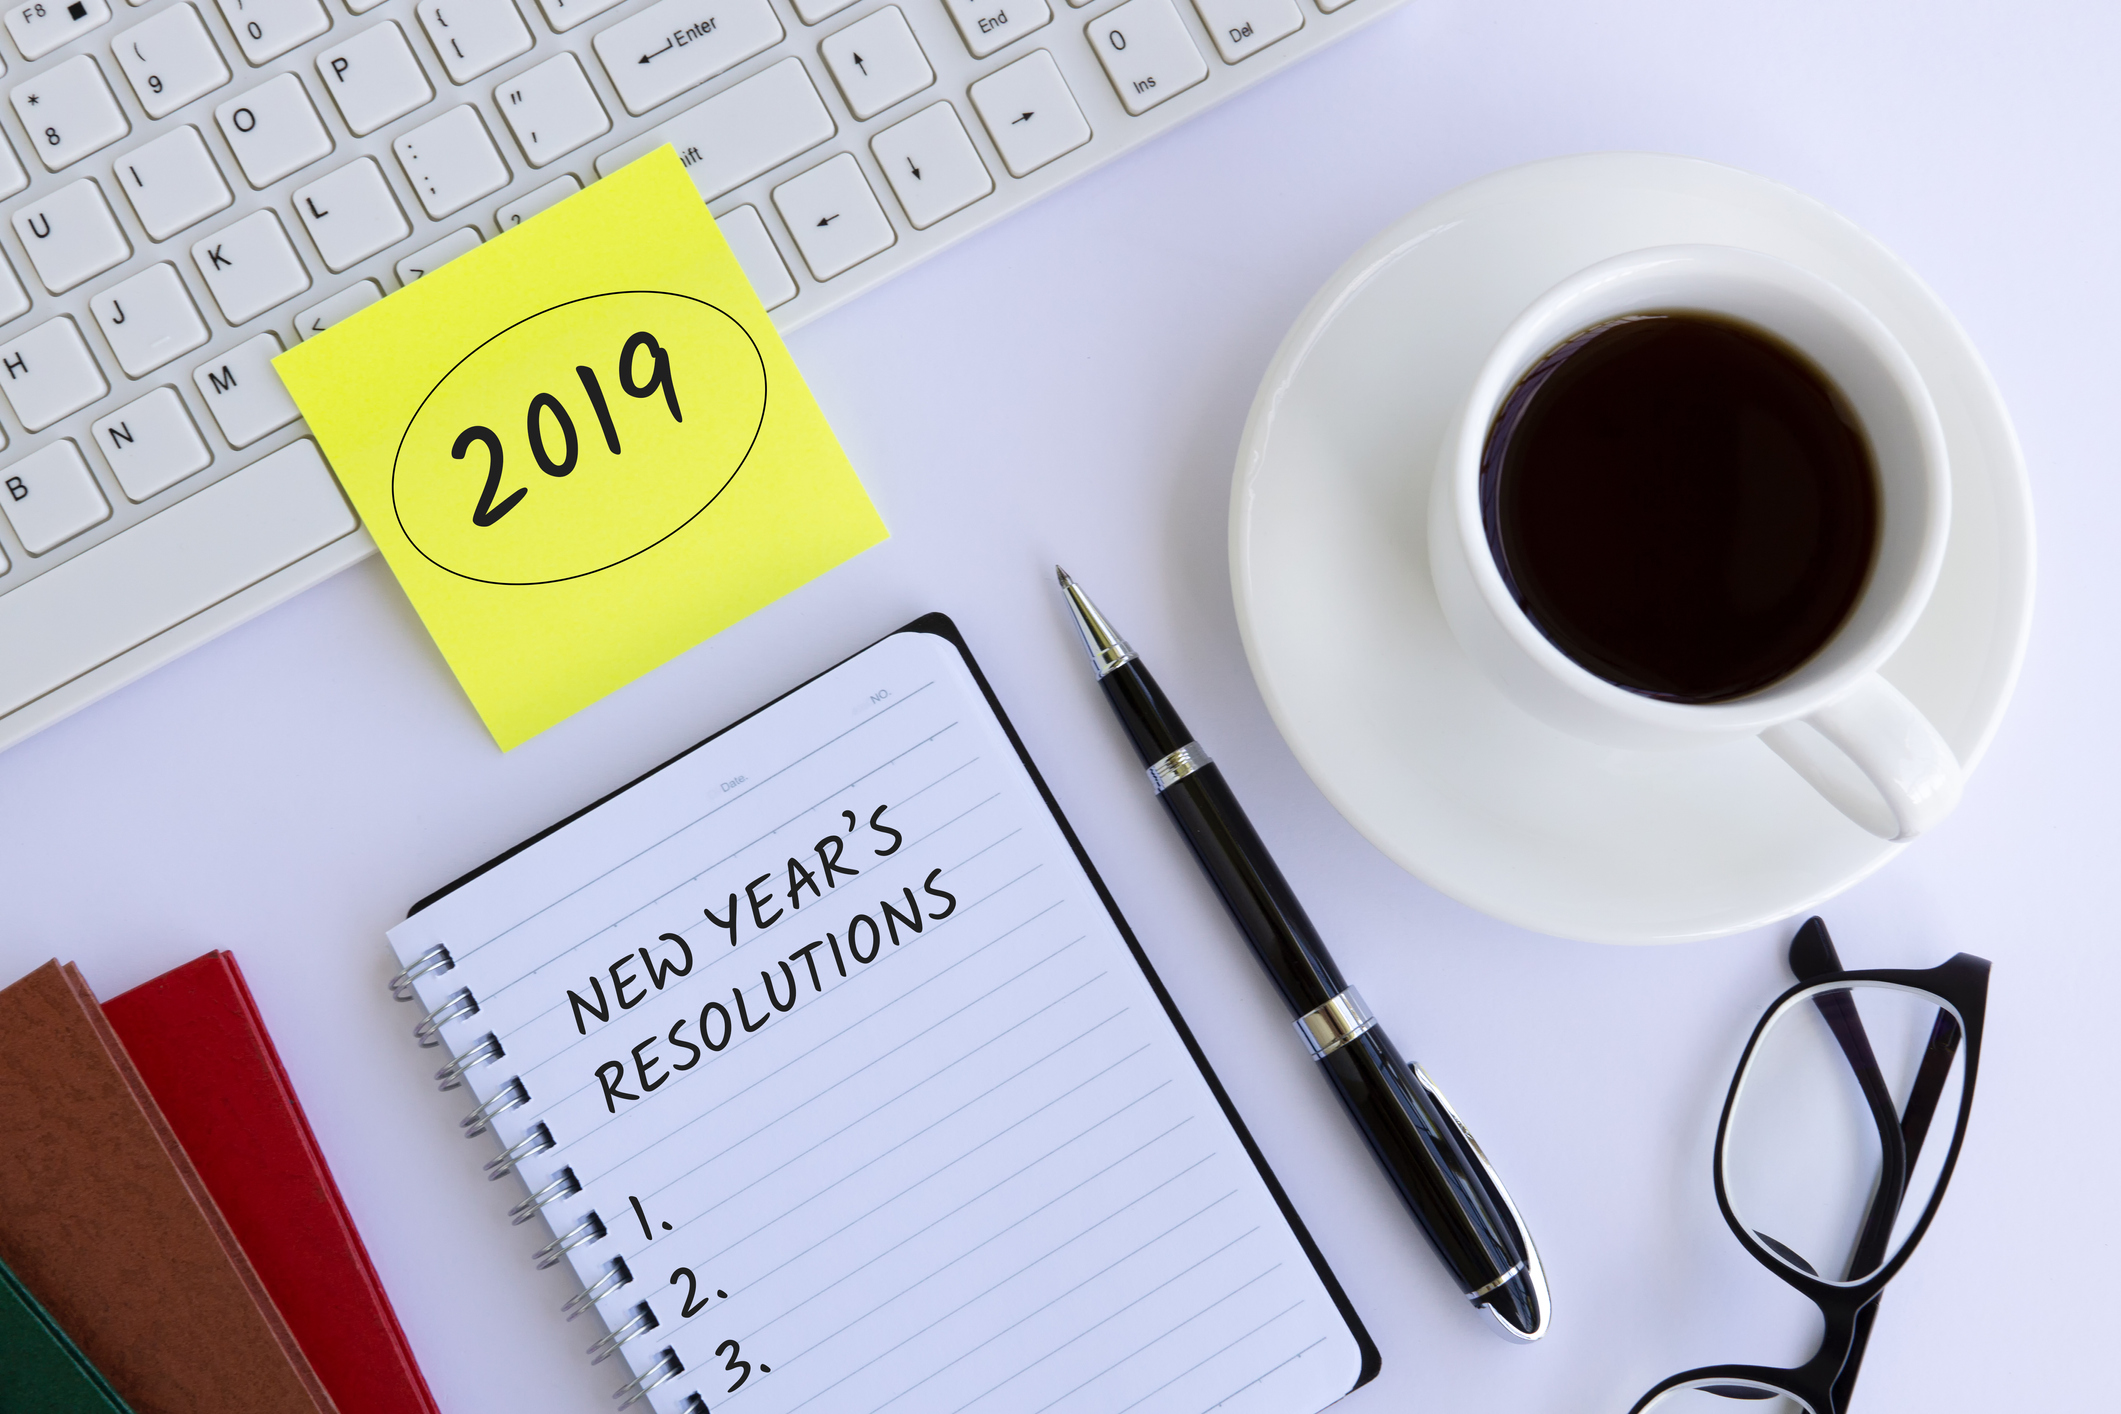 5-necessary-new-years-resolutions-every-business-owner-should-make